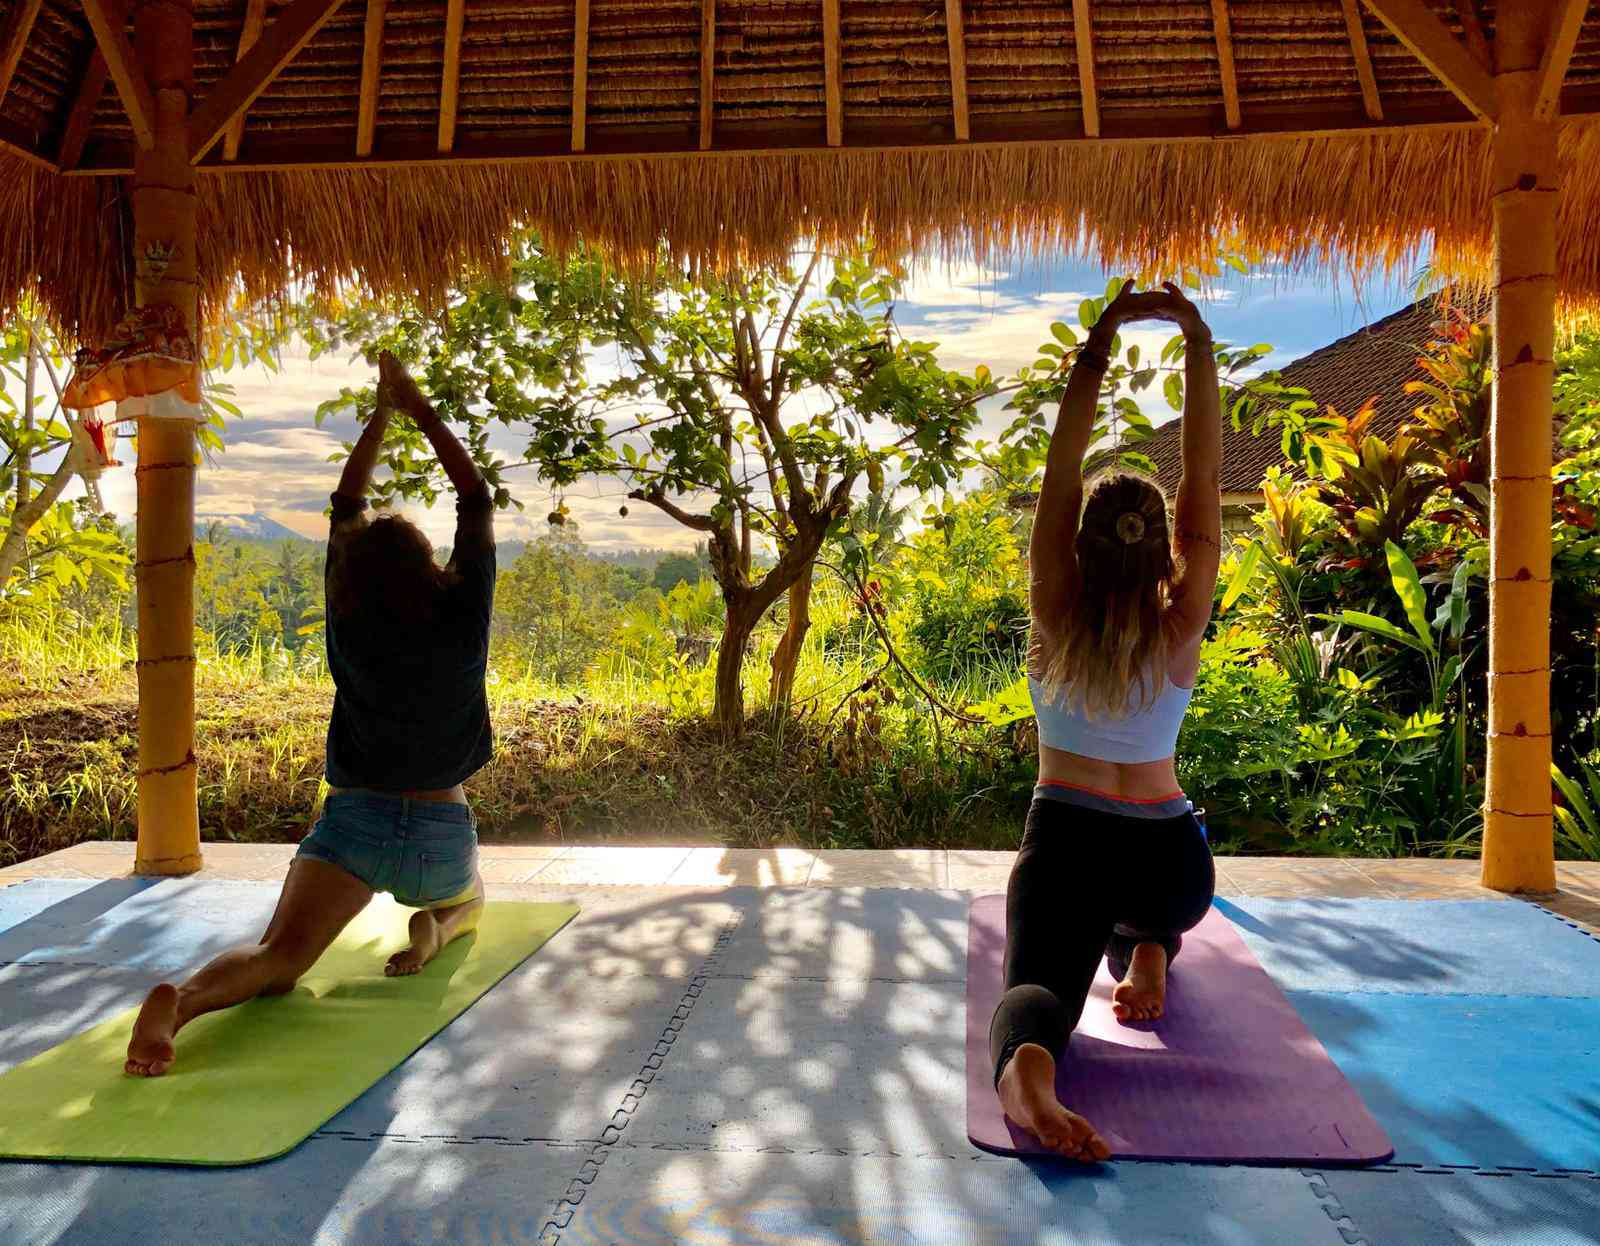 Two people doing yoga with a view of lush Balinese greenery